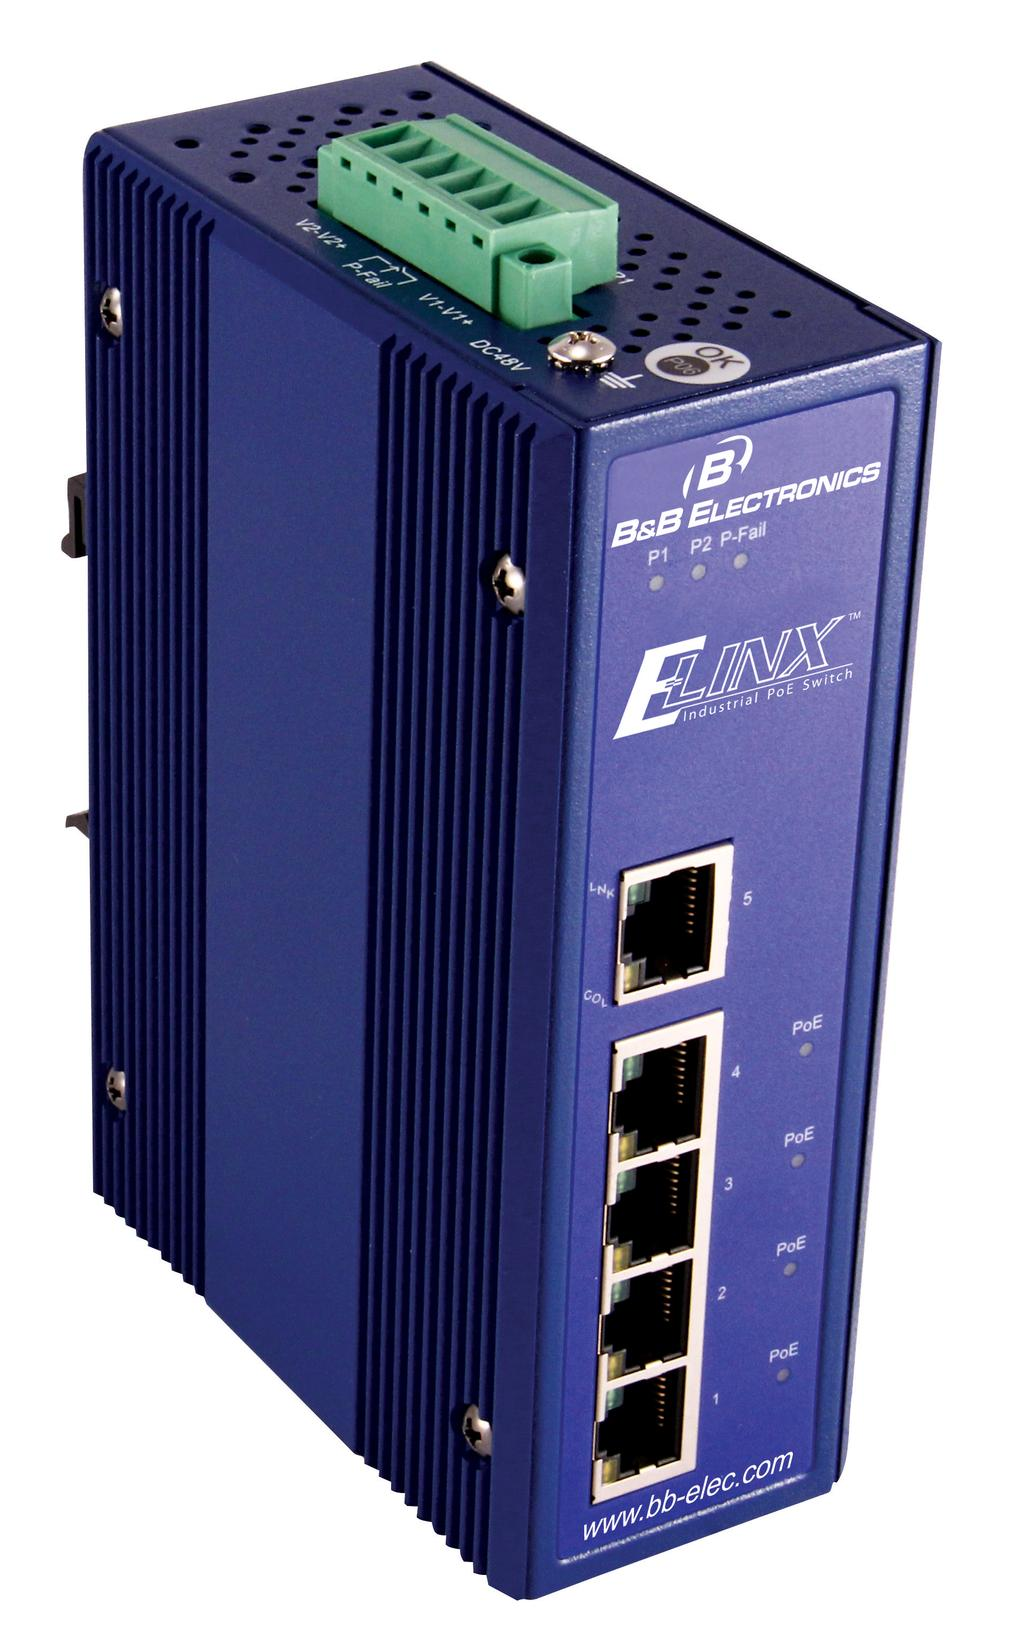 Manual Elinx Eirhp305 T 5 Ports10 100 With 4 Poe Ports Unmanaged Reference Design For Poweroverethernet Midspan Or Endpoint